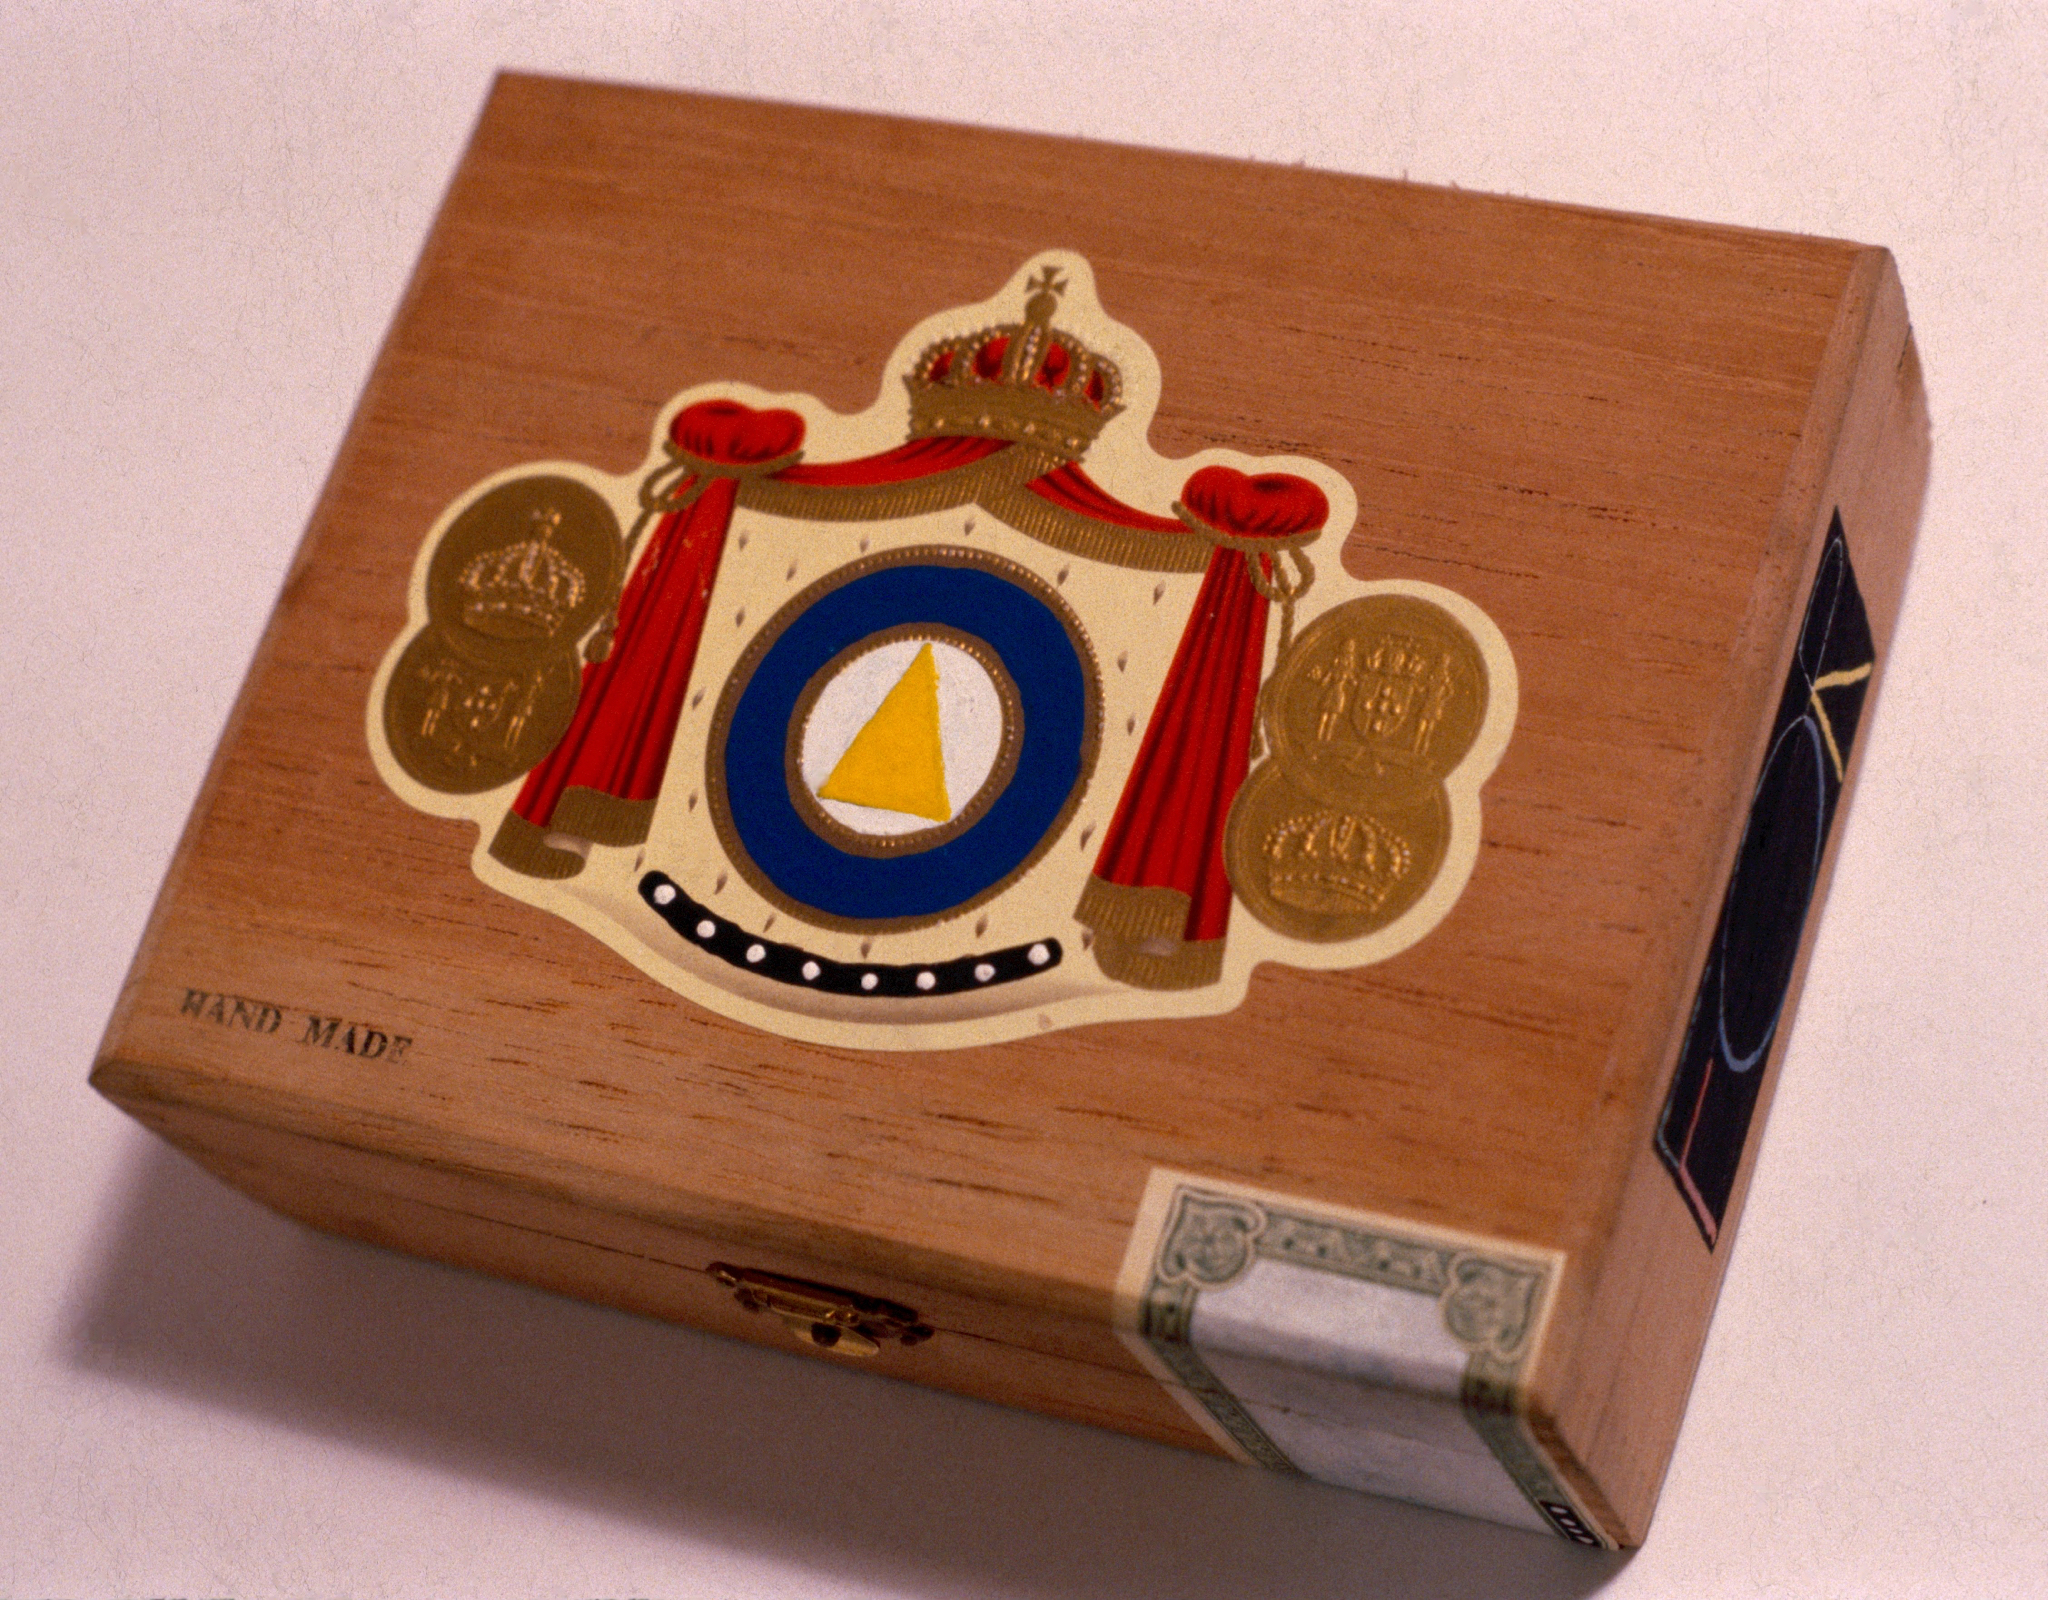 For Cigar Box, 1977